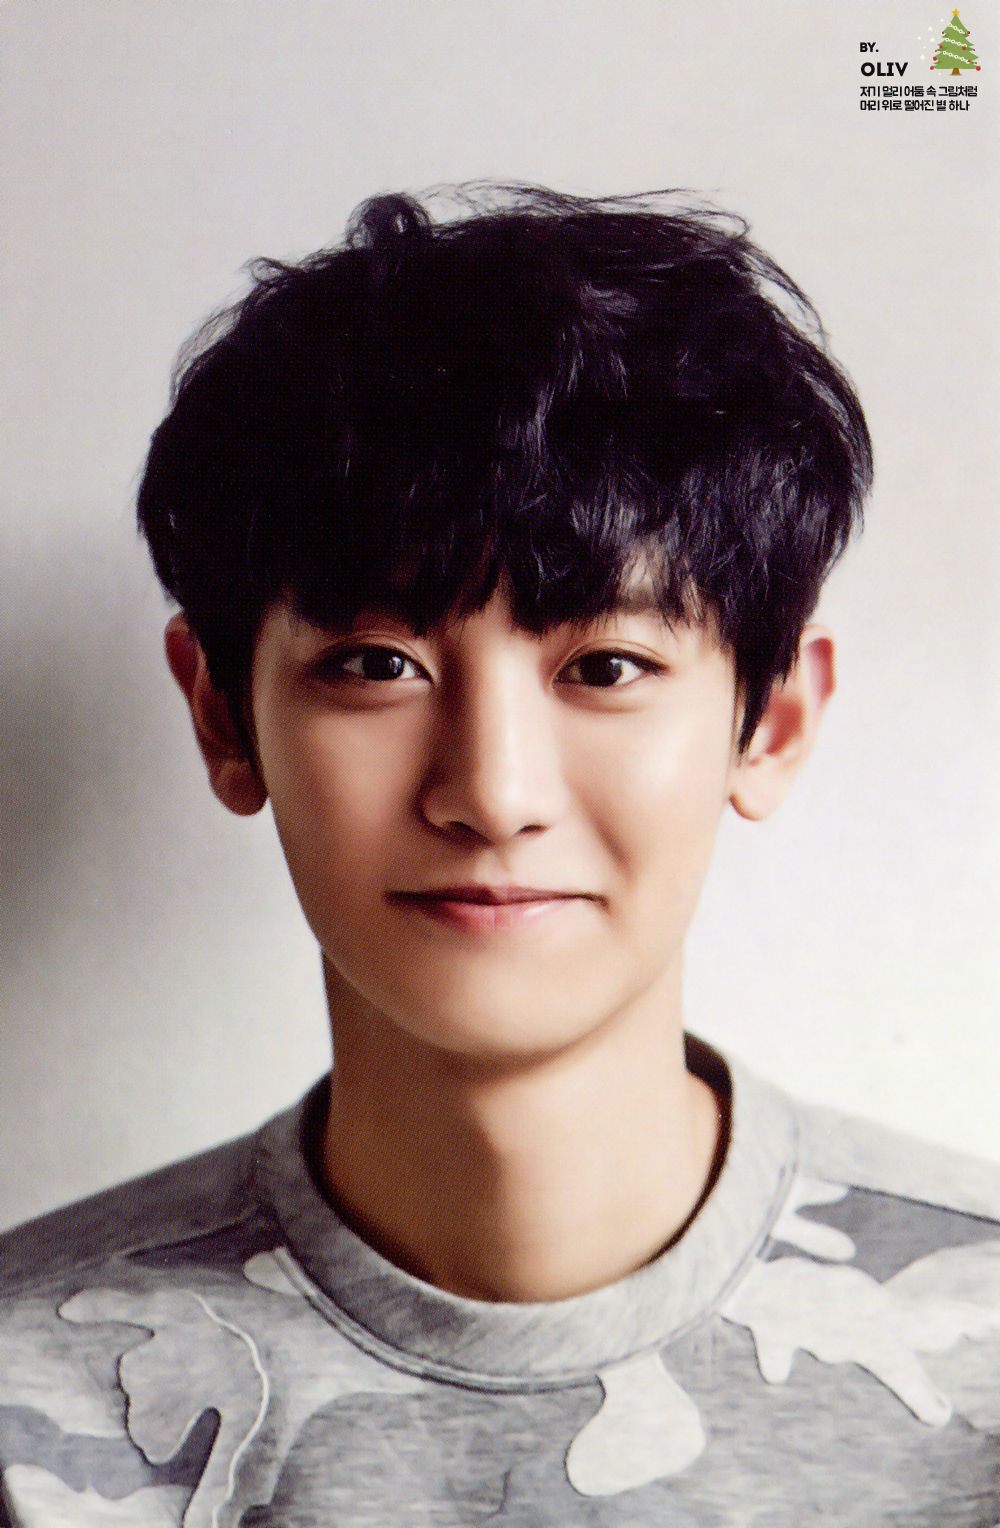 Facts about Chanyeol birthday, birthplace, age, before